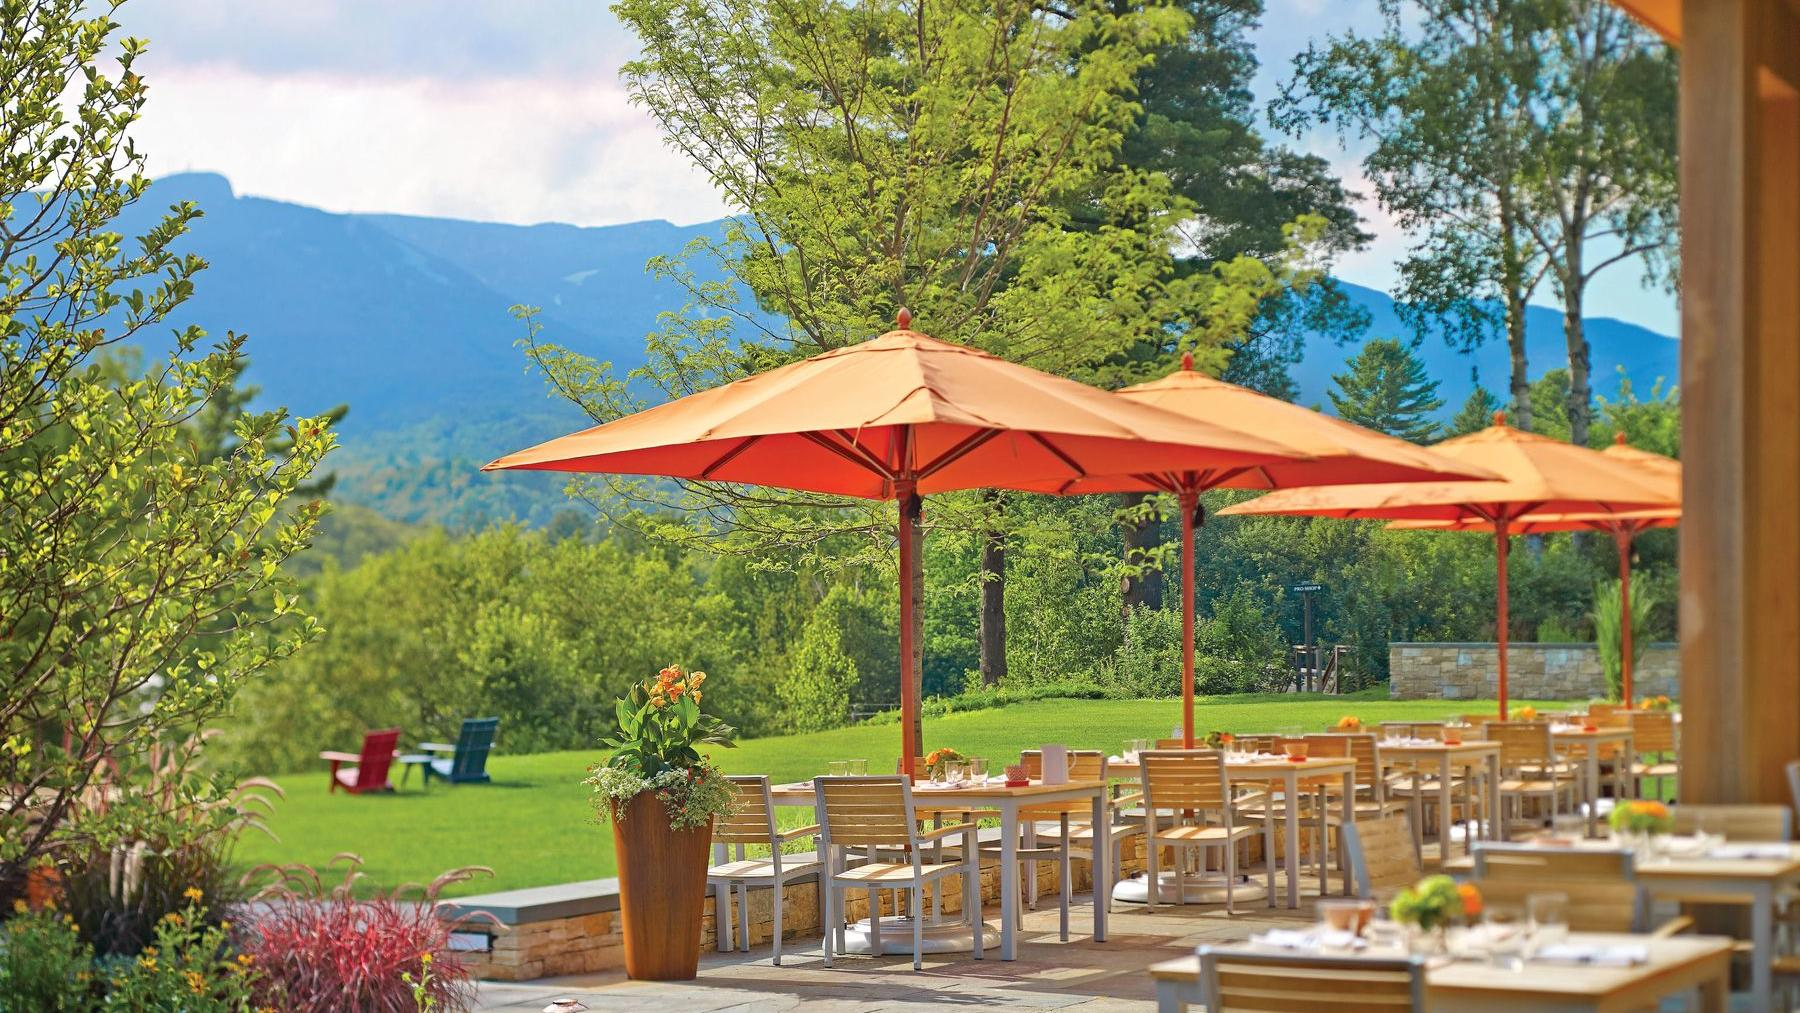 Outdoor restaurant with mountainscape in background.